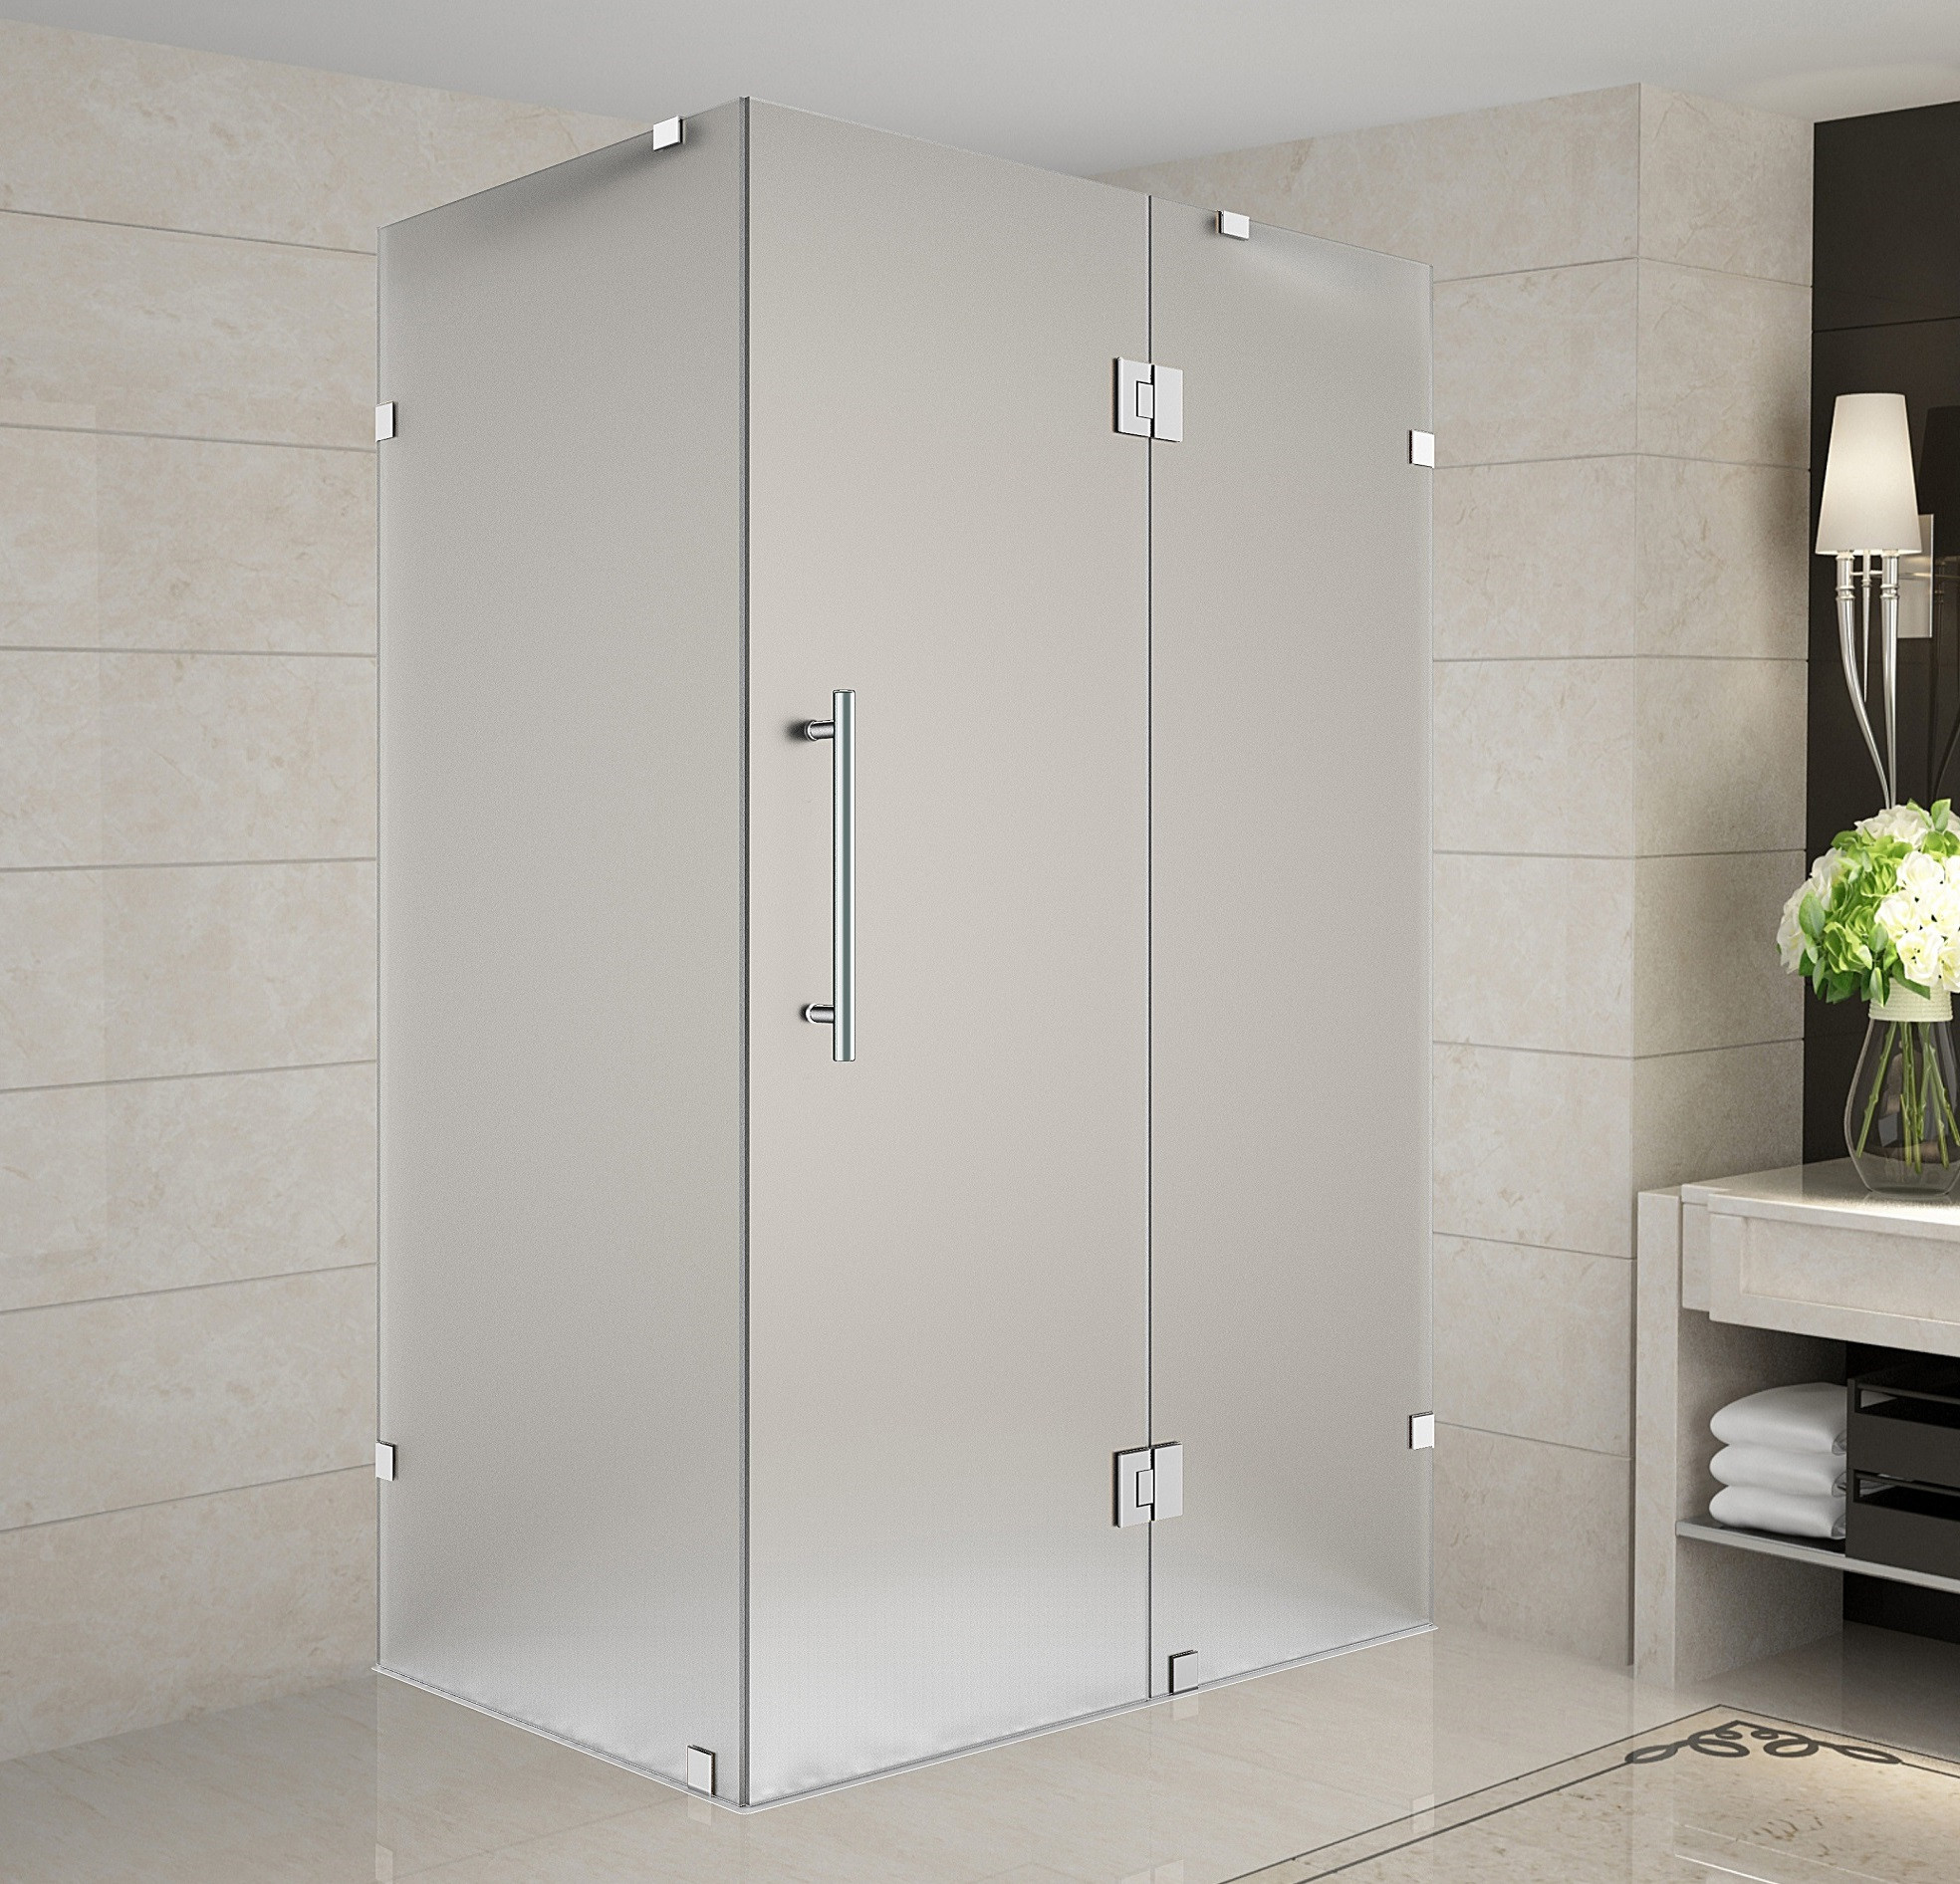 Aston Global SEN987F-SS-3530-10 Frameless Frosted Glass Shower Enclosure In Stainless Steel